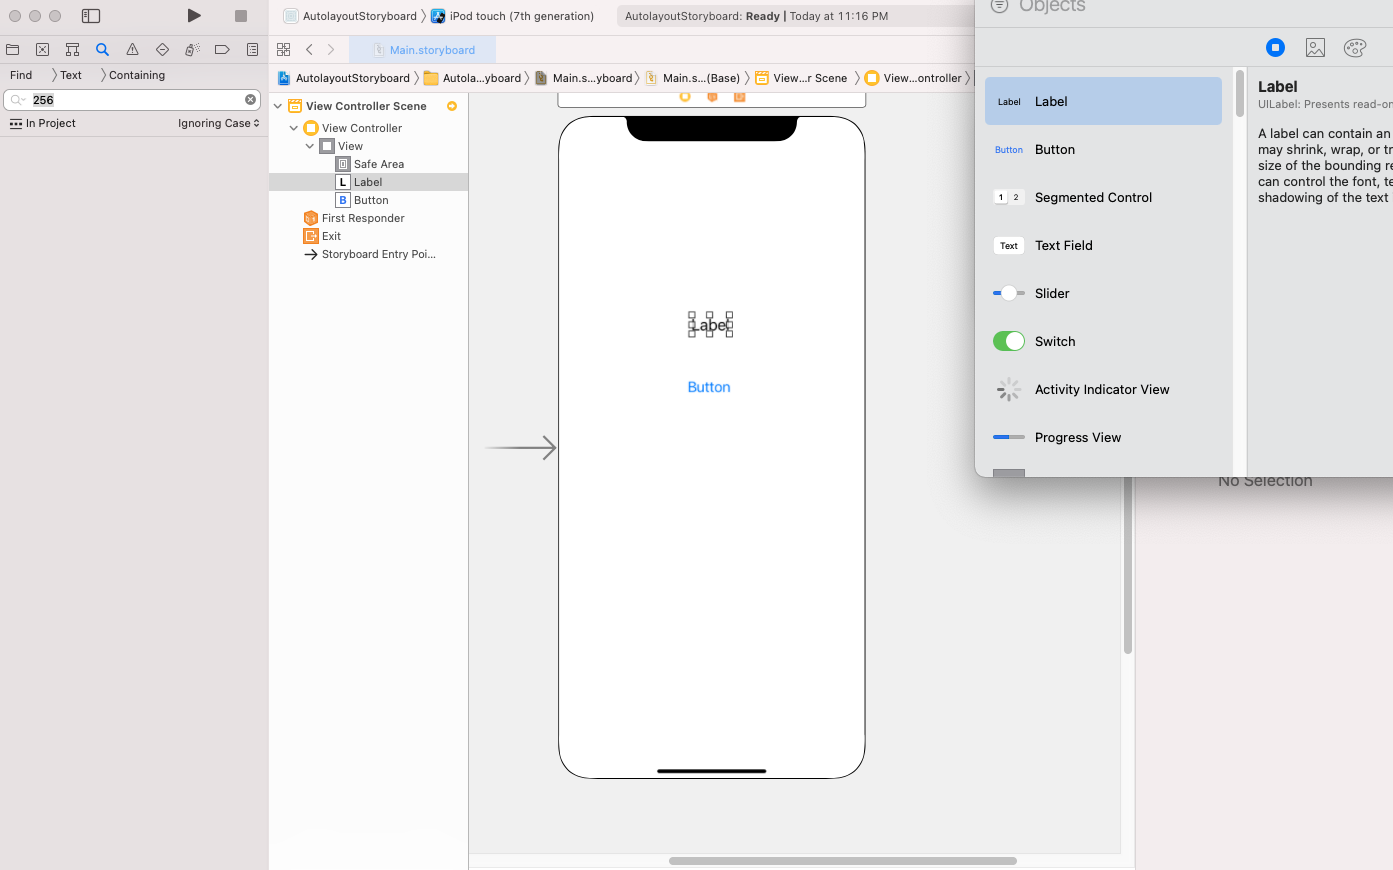 Auto layout in storyboard